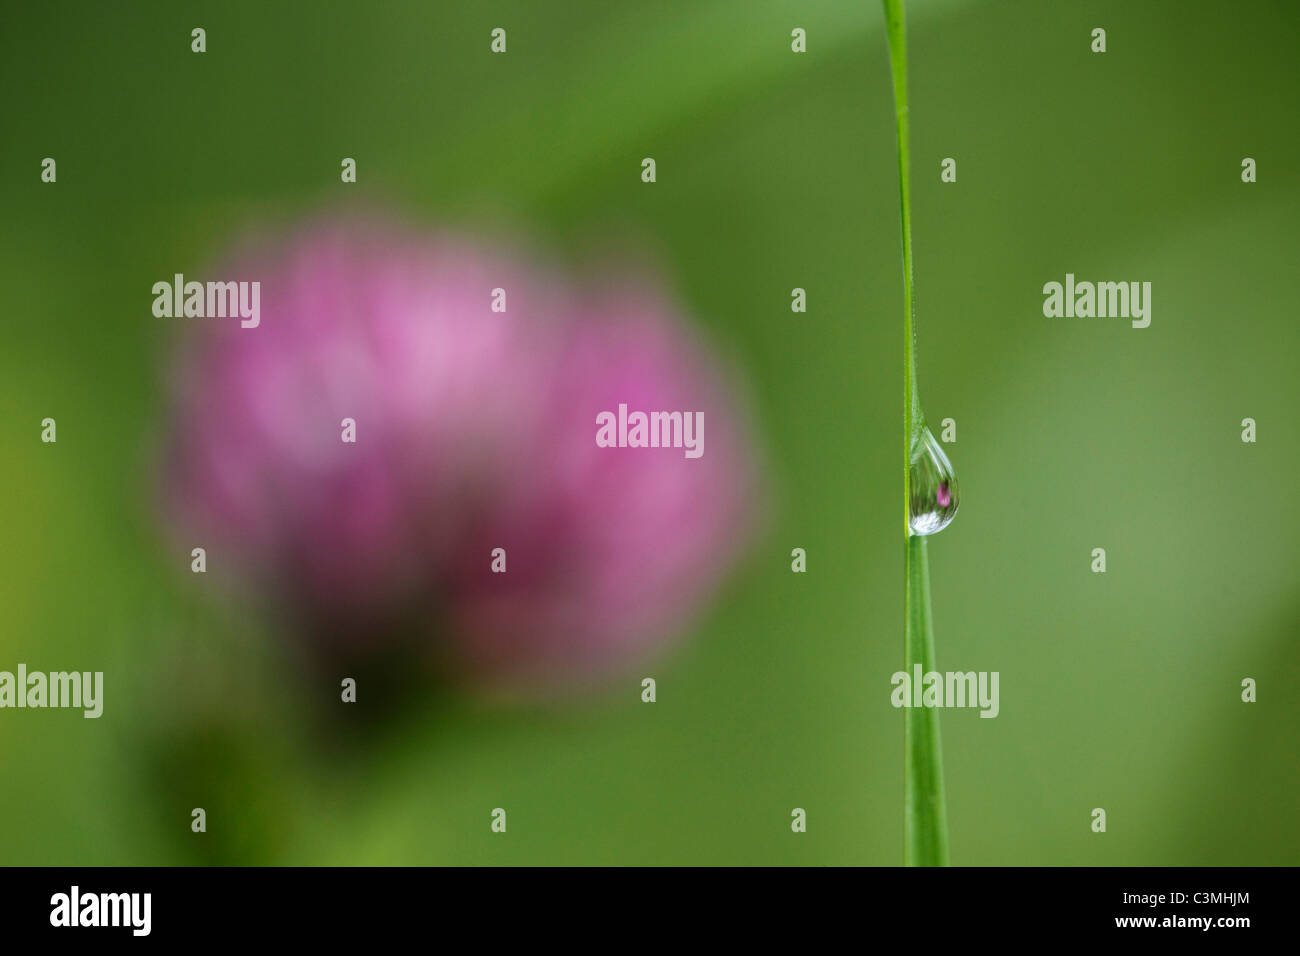 L'Allemagne, l'eau goutte sur brin d'herbe, close-up Photo Stock